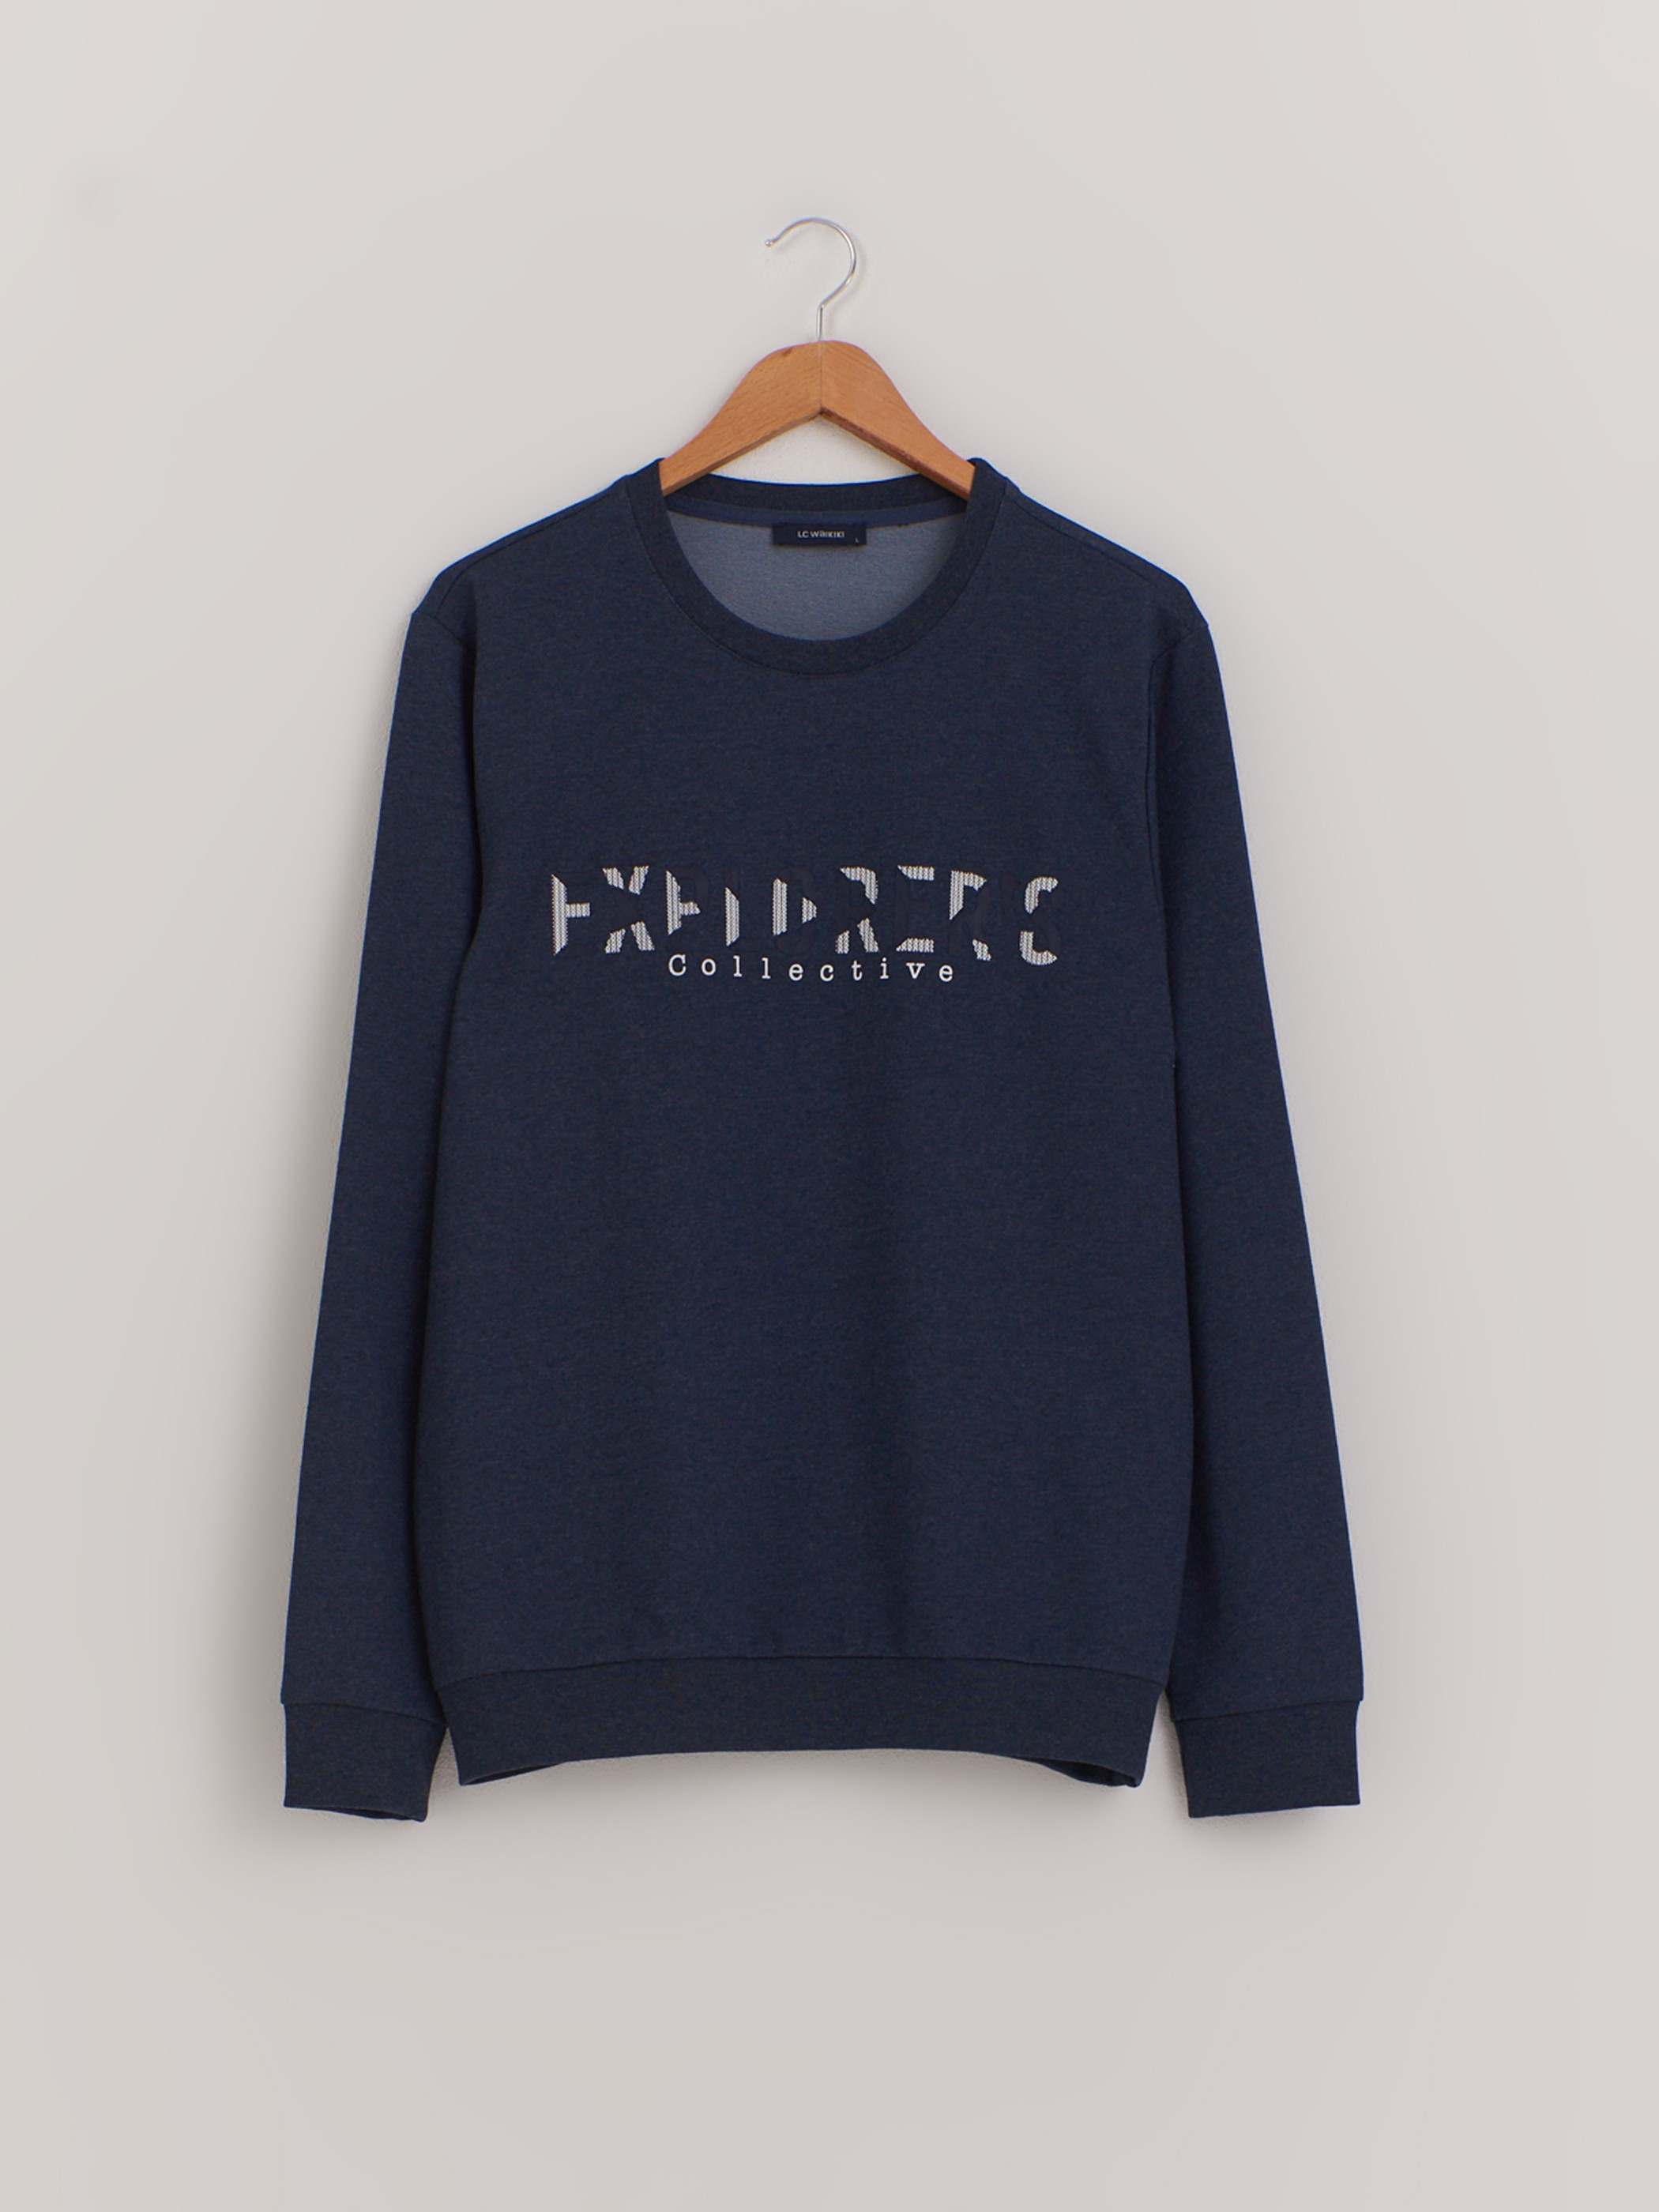 BLUE - Crew Neck Printed Sweatshirt - 0W7235Z8